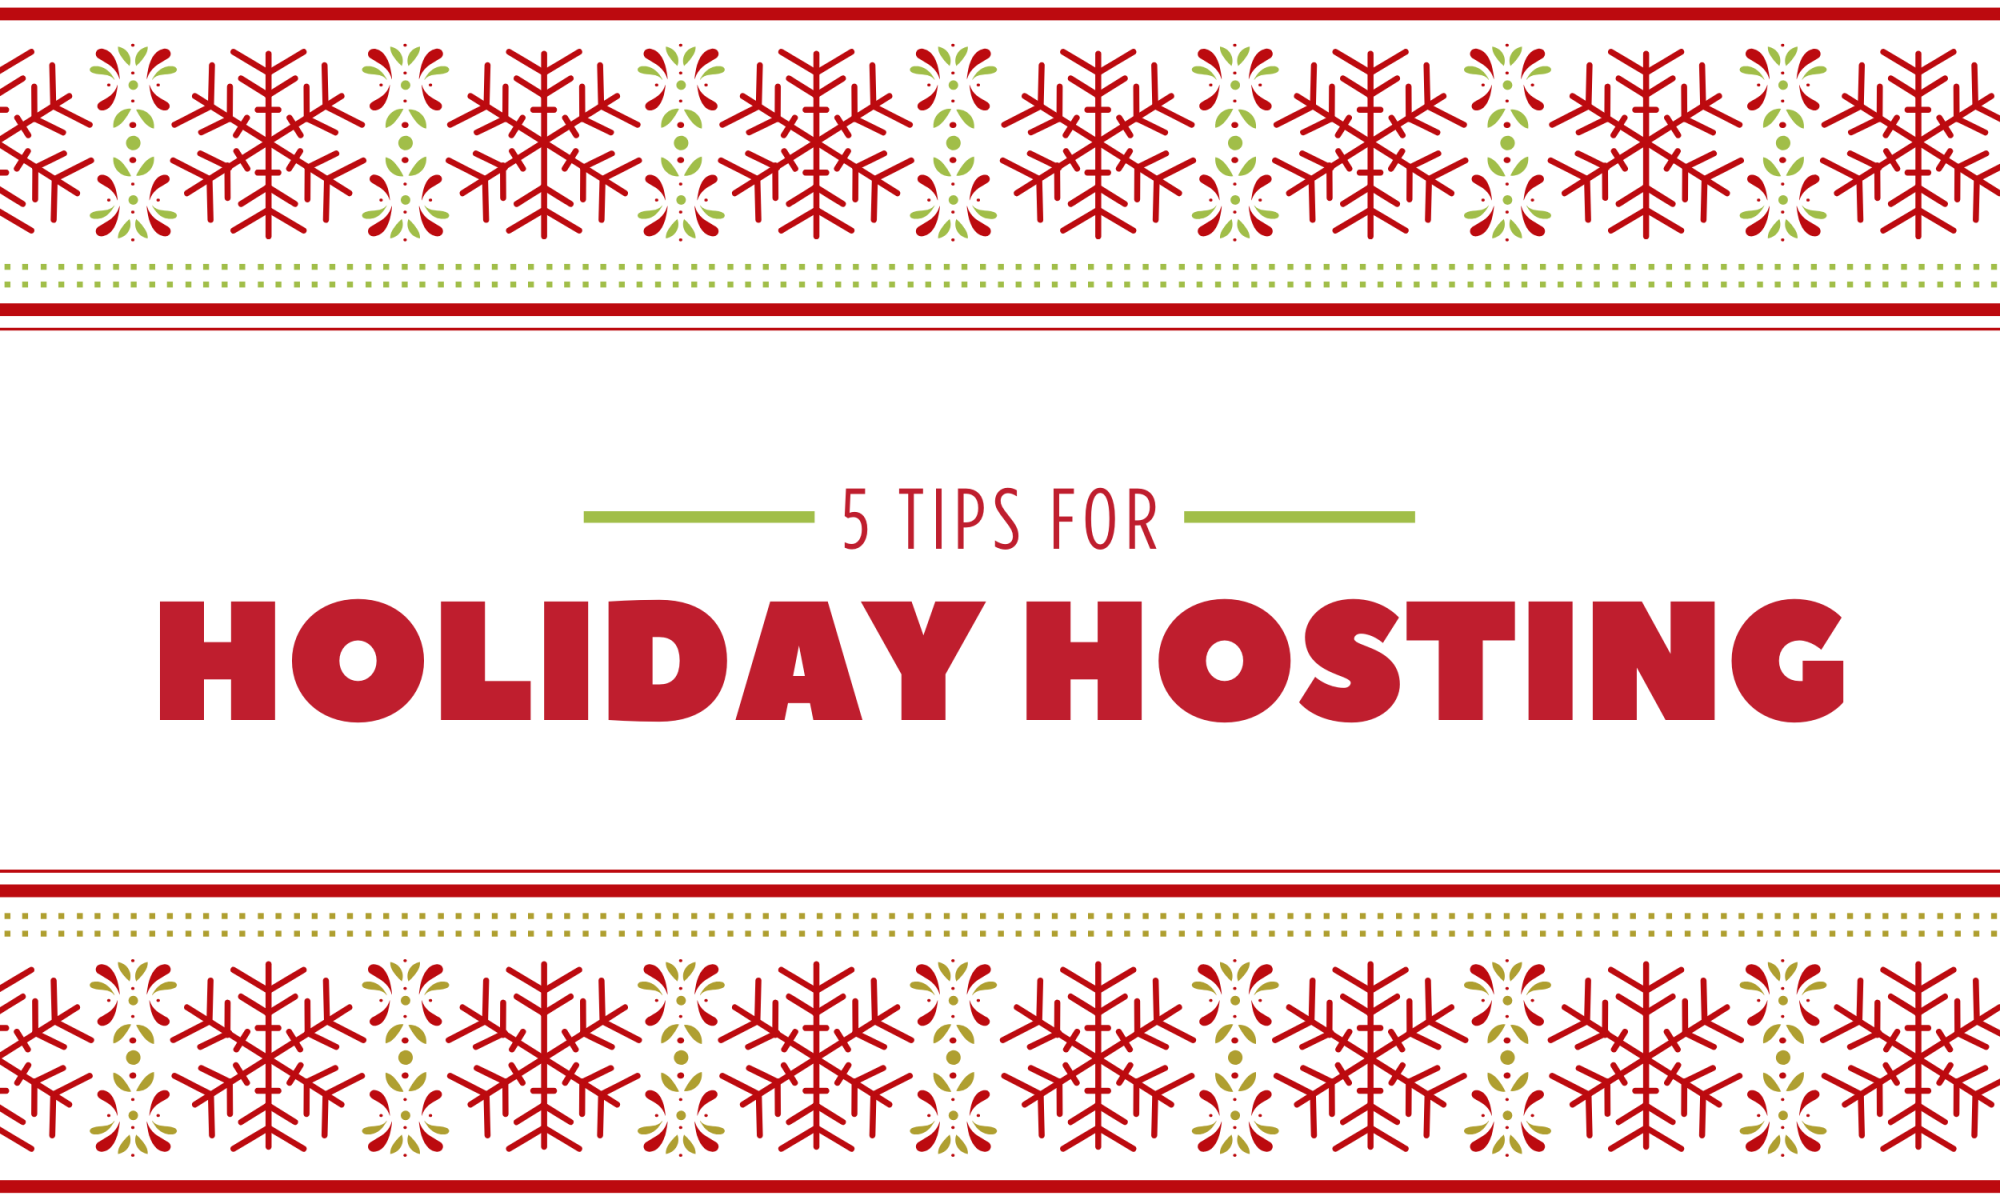 Five tips for holiday hosting.